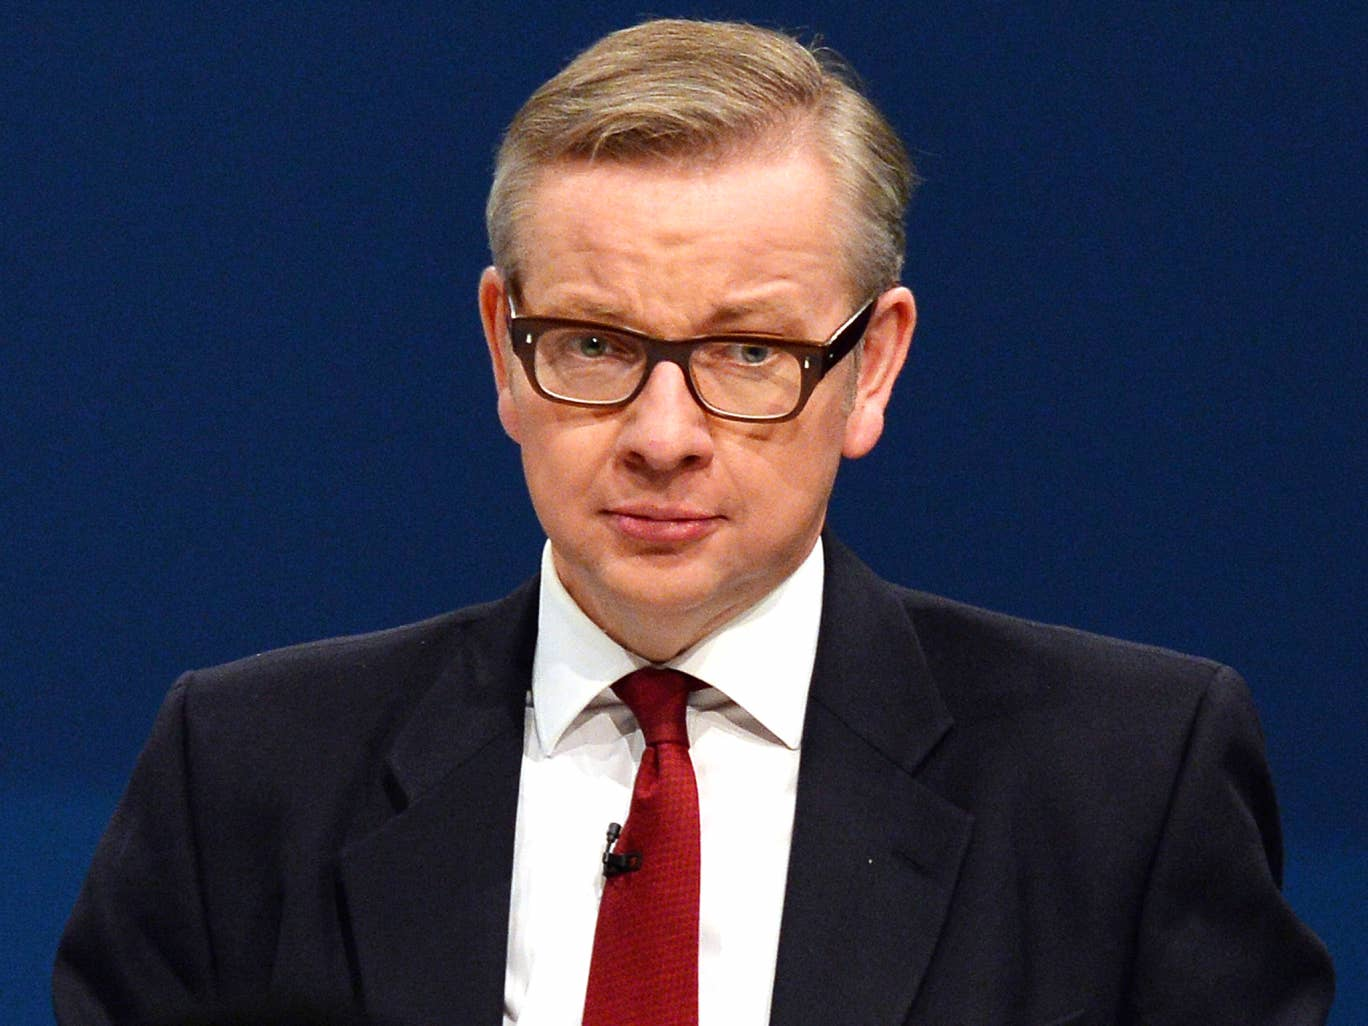 Michael Gove has been accused of losing control of his flagship free school programme